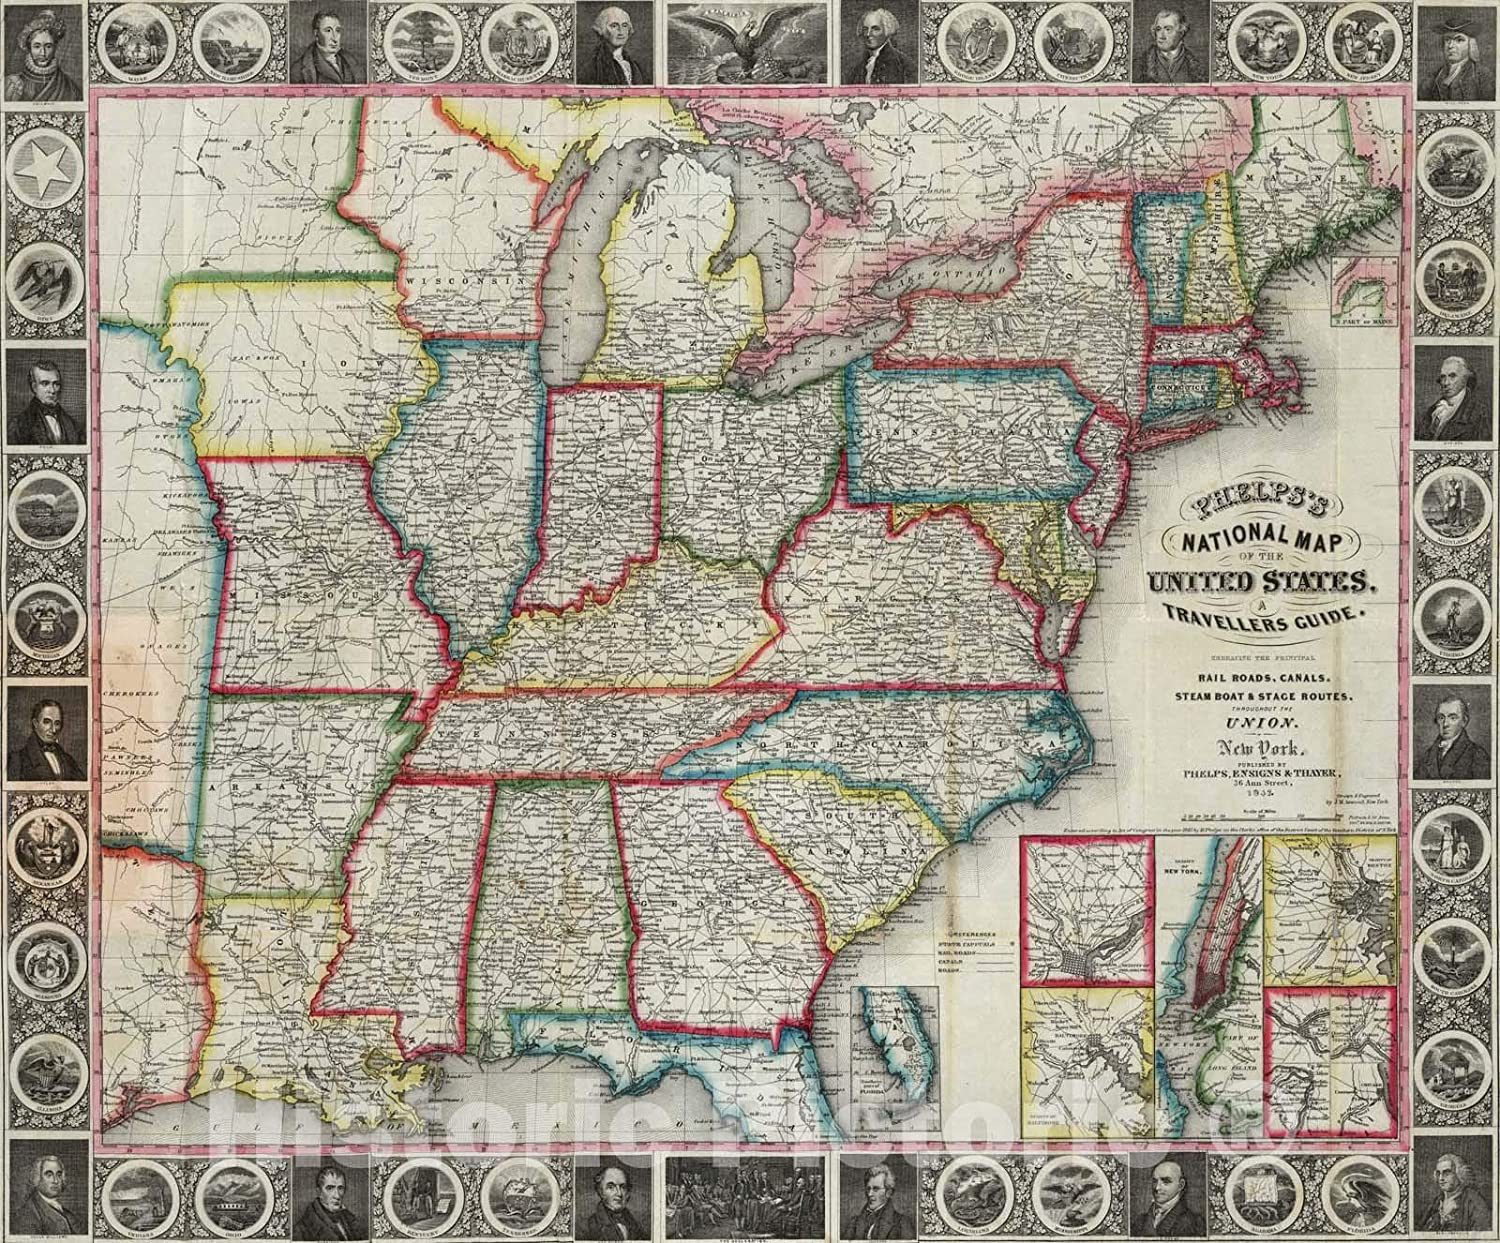 Amazon.com: Historic Map - National Map of The United States ...